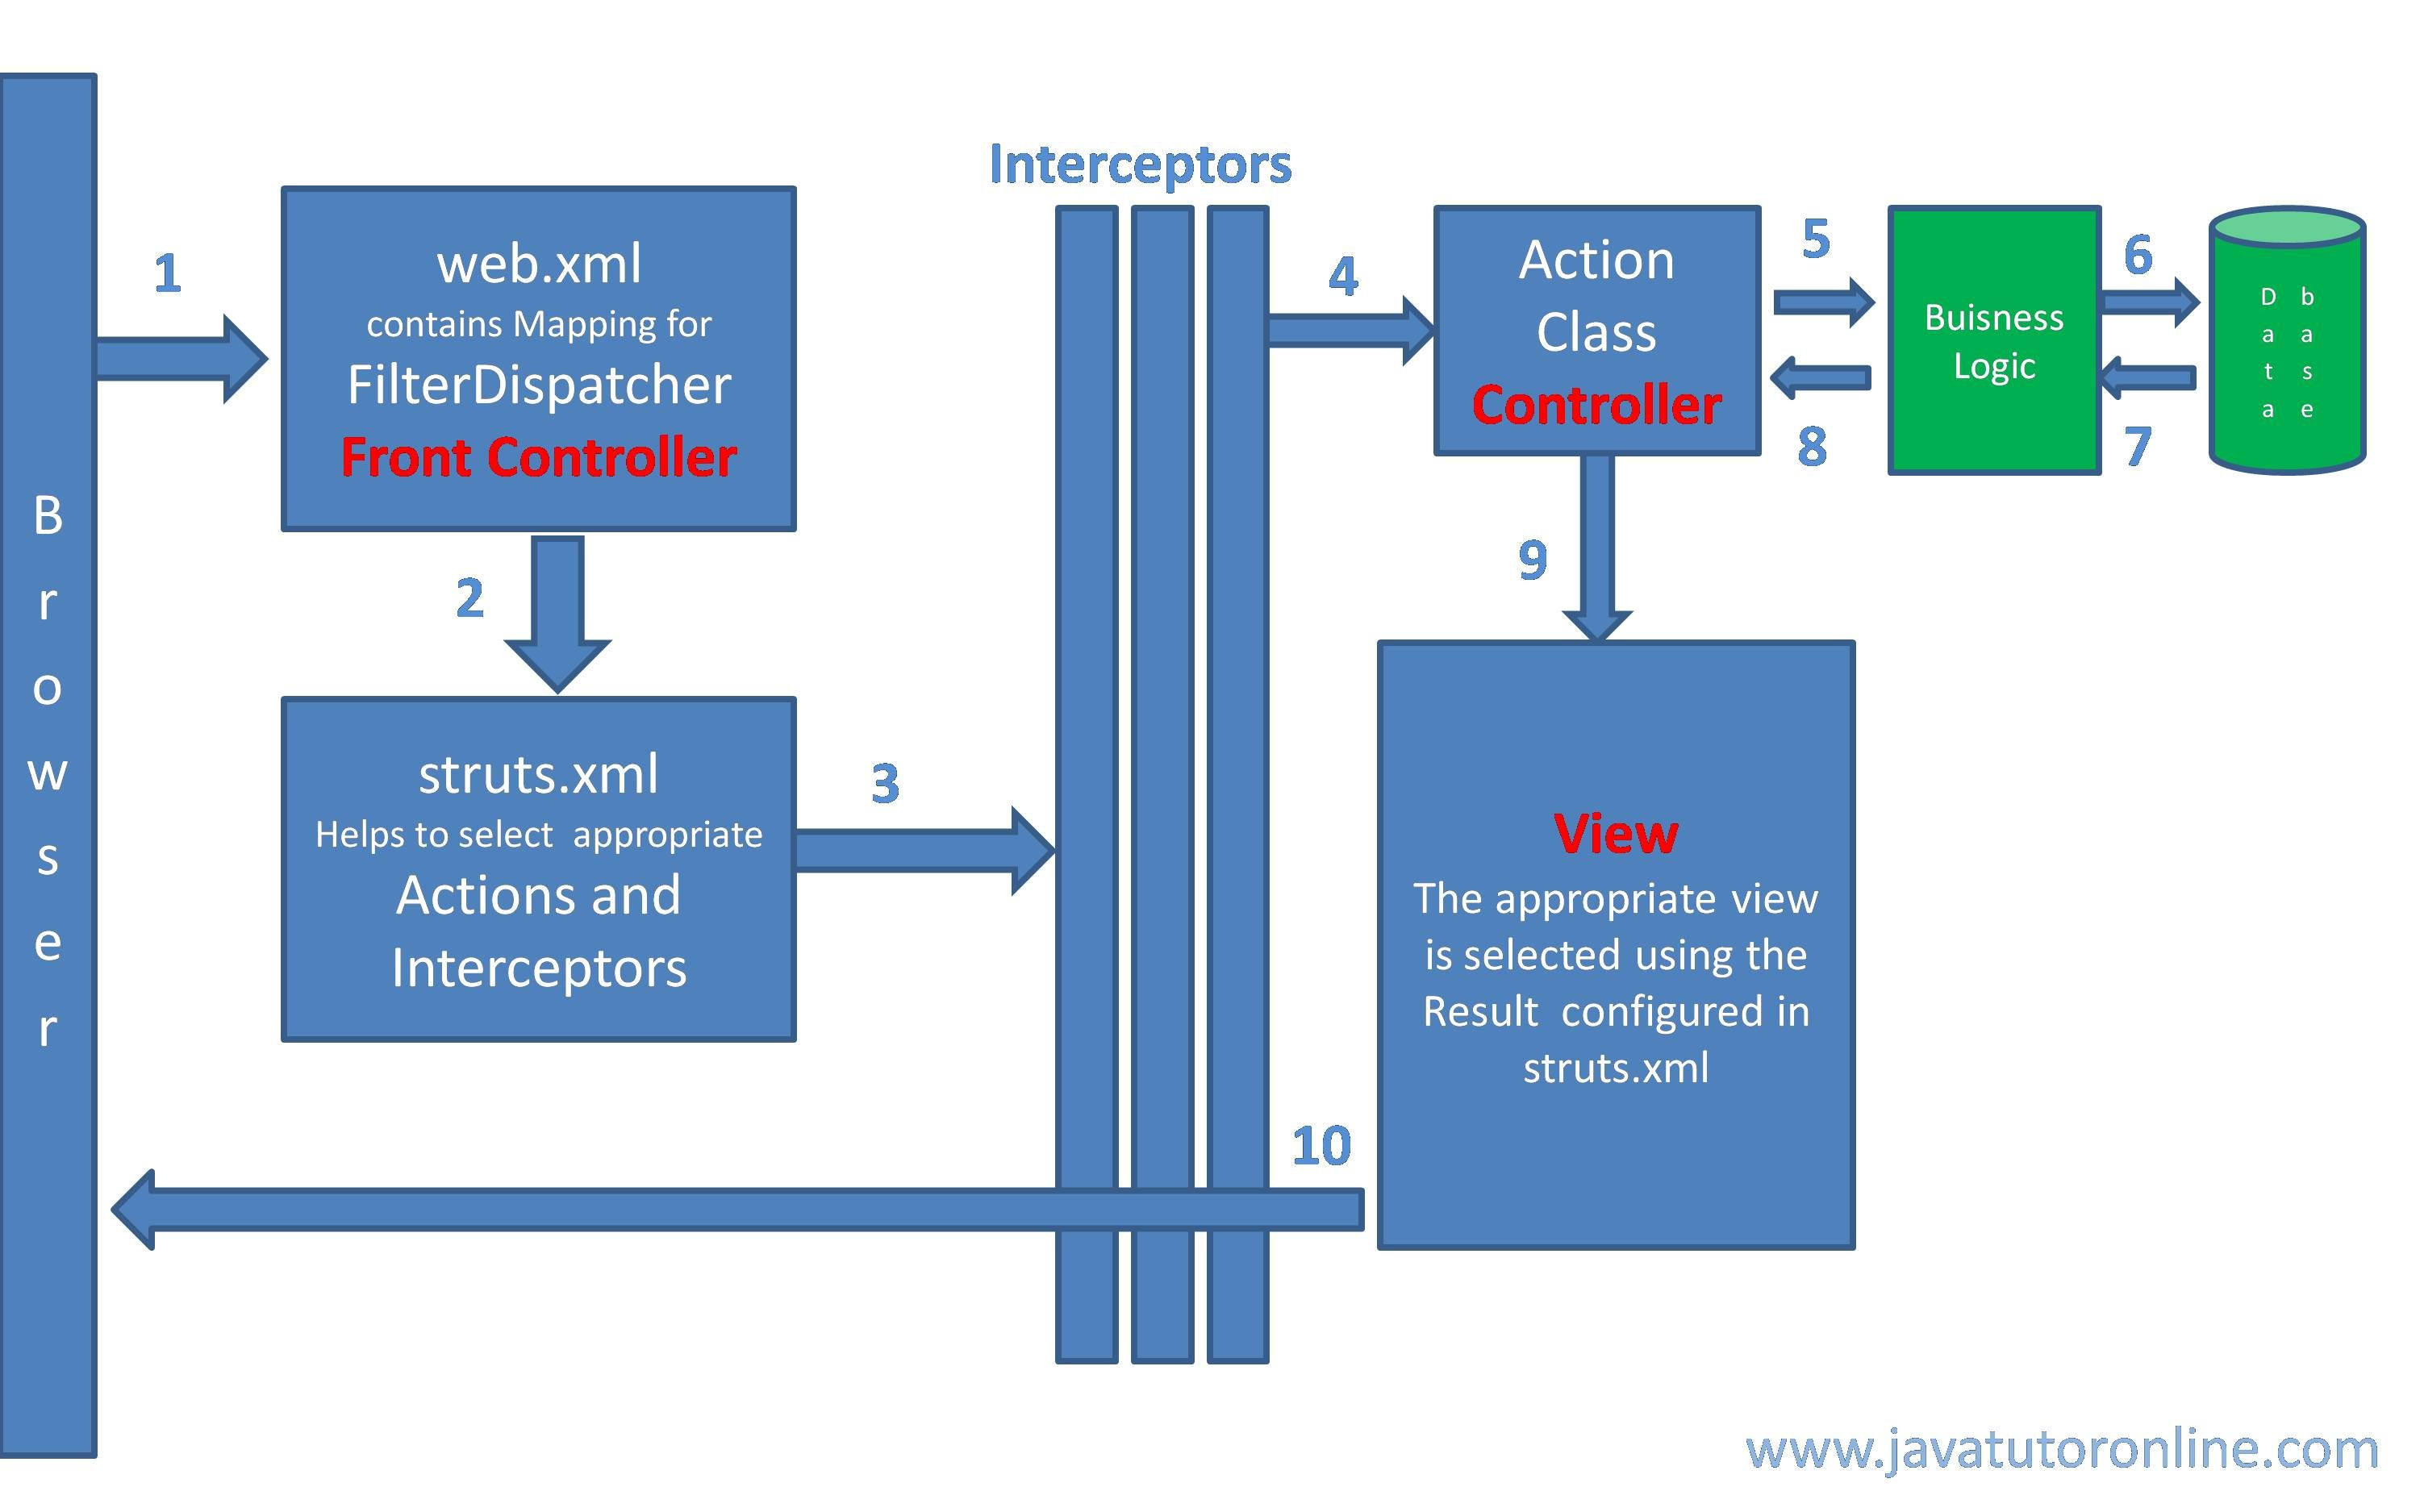 mvc struts architecture diagram telecaster wiring 3 way how struts2 works working of tutorial